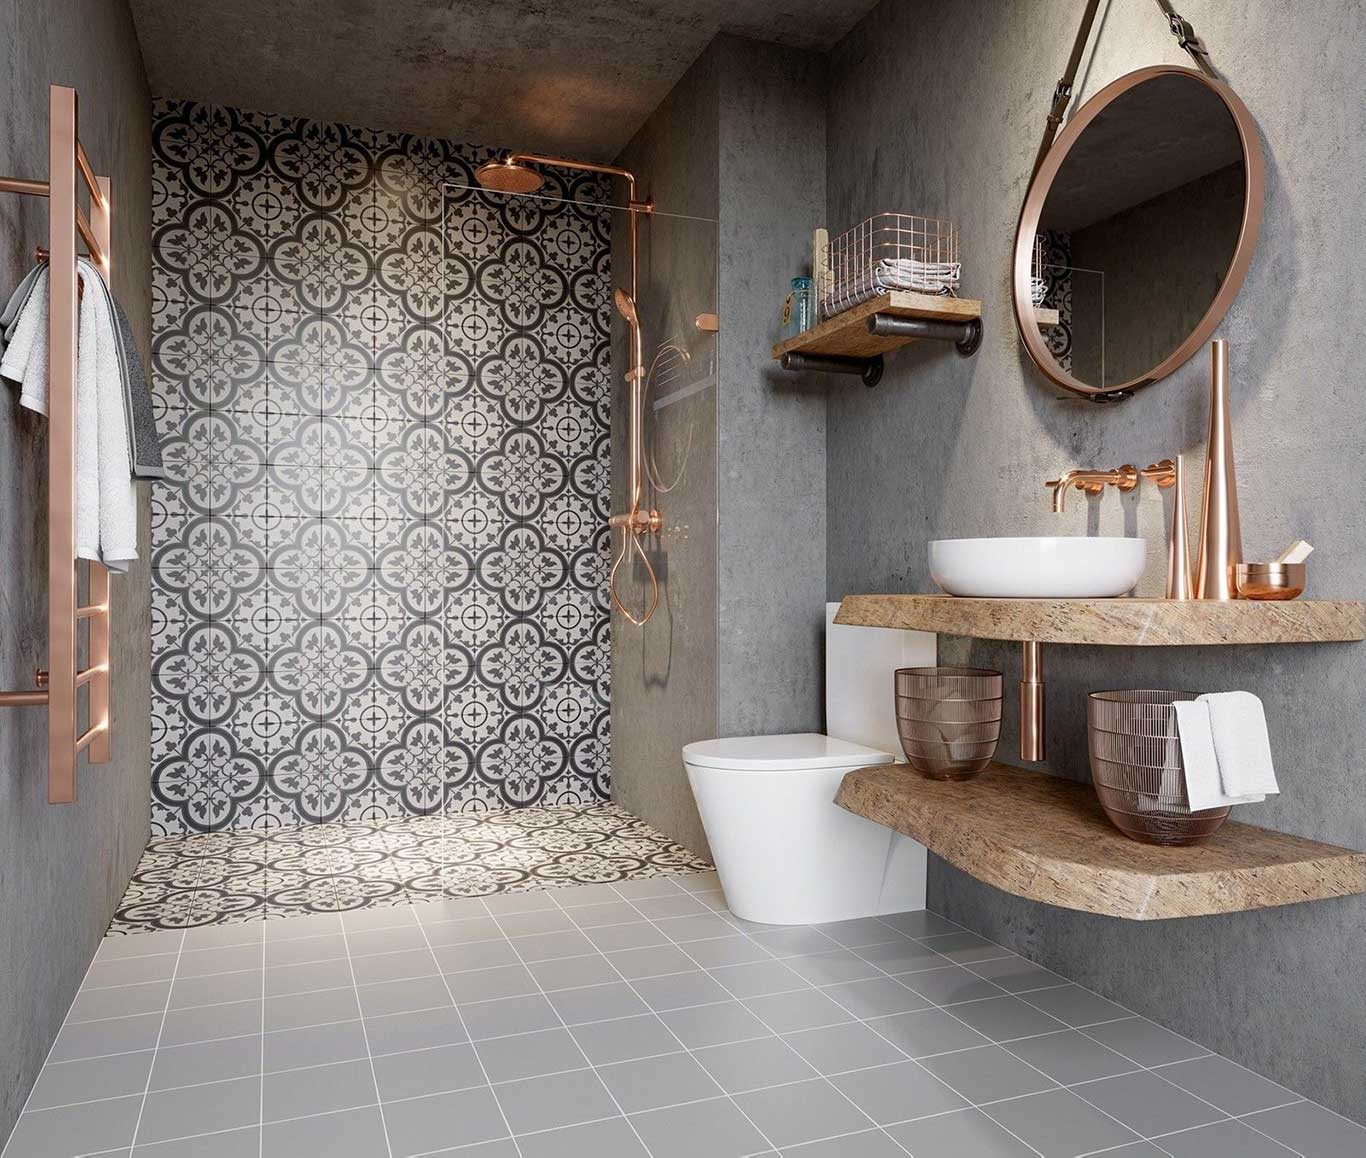 Modern Victorian grey-toned bathroom with  patterned tiles at the shower area and metallic copper finishes.